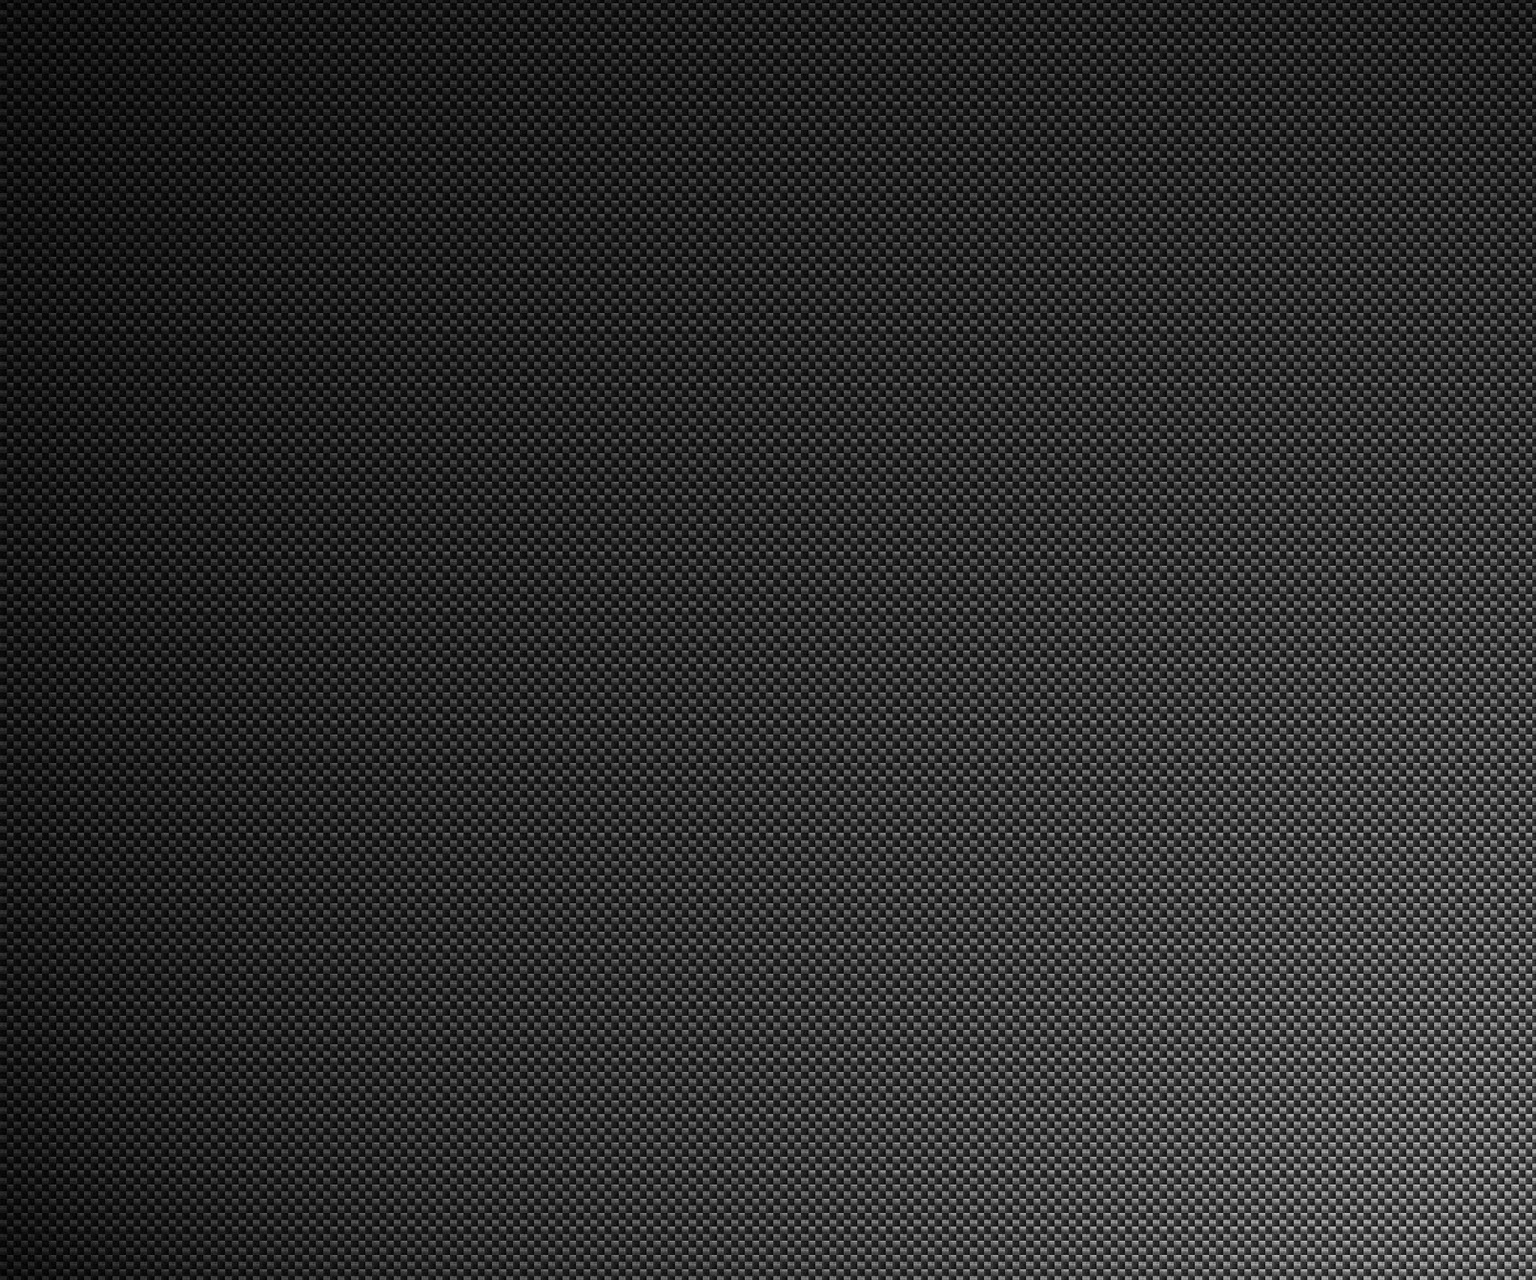 Simple HD Wallpapers For BlackBerry Z10 1536x1280